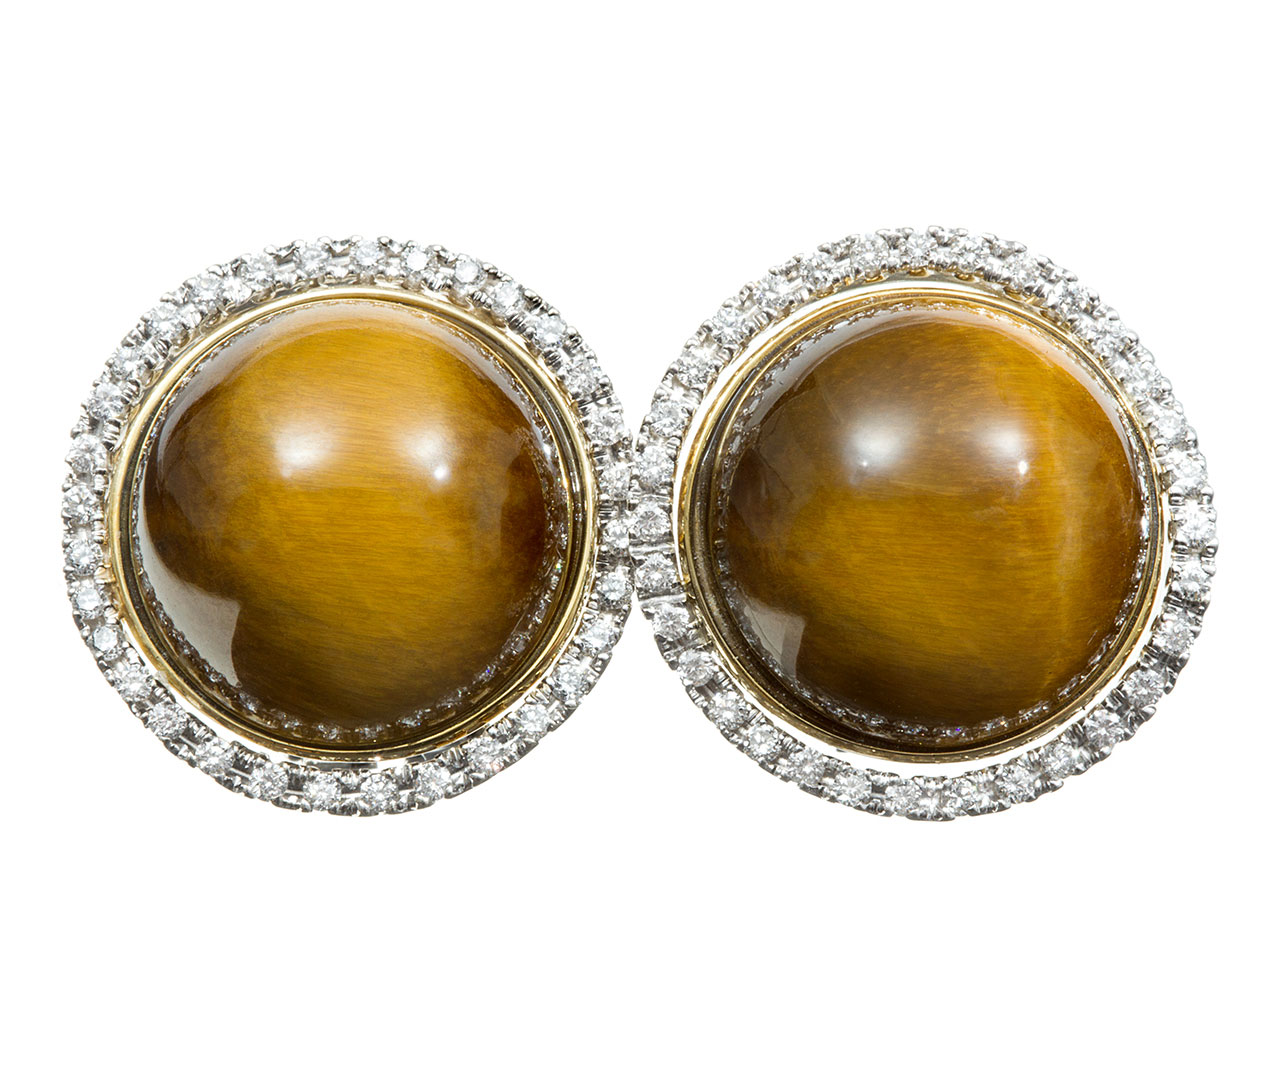 Cabachon Tigers Eye And Diamond Earrings By Roberto Coin